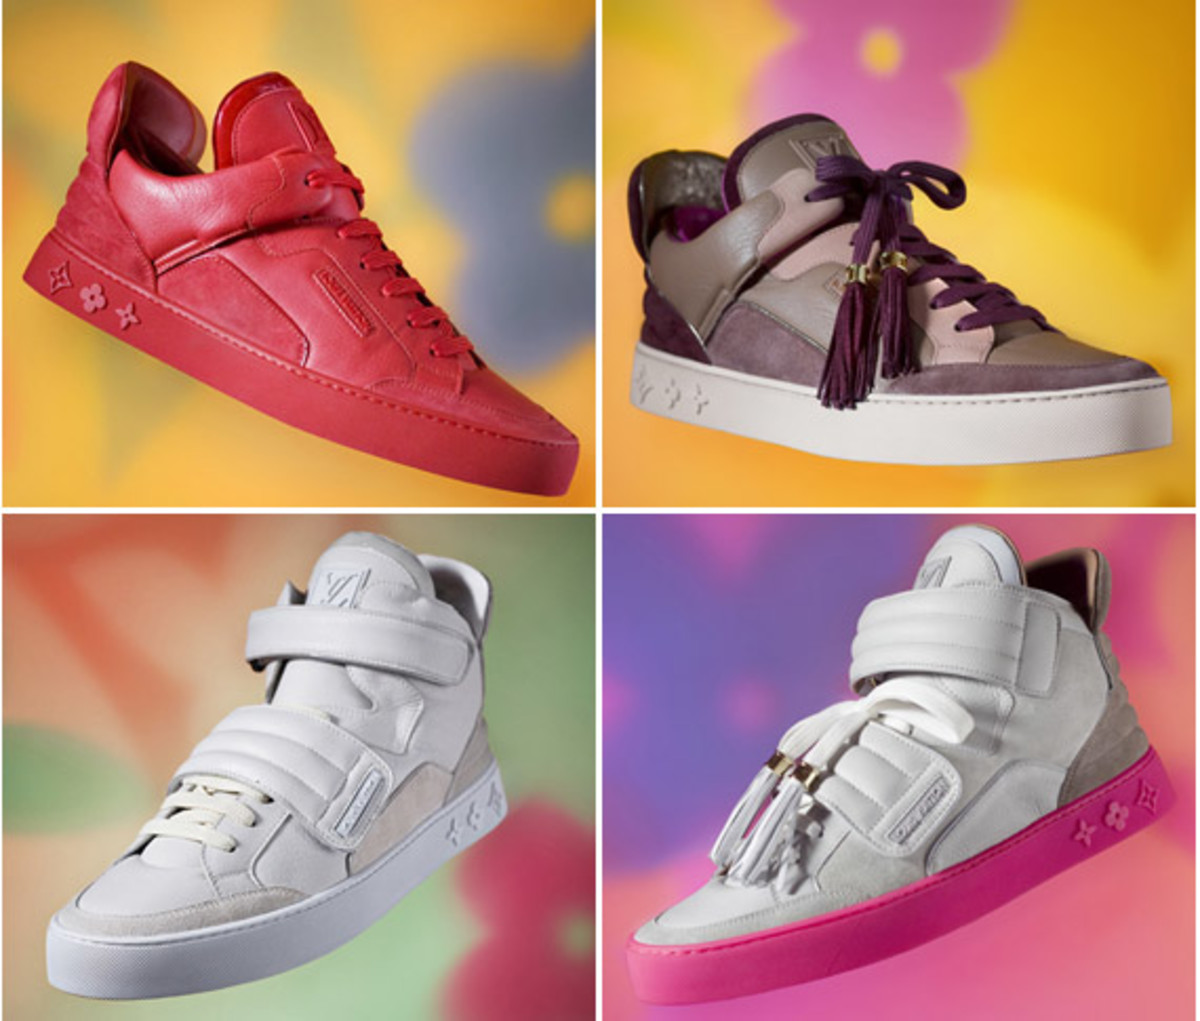 louis-vuitton-x-kanye-west-sneakers-preview-1